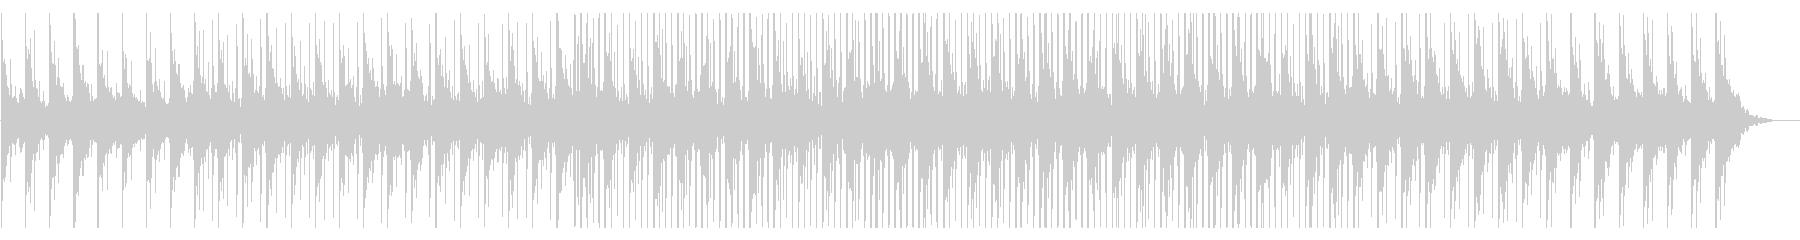 Neutral BGM for news commentary's unreproduced waveform